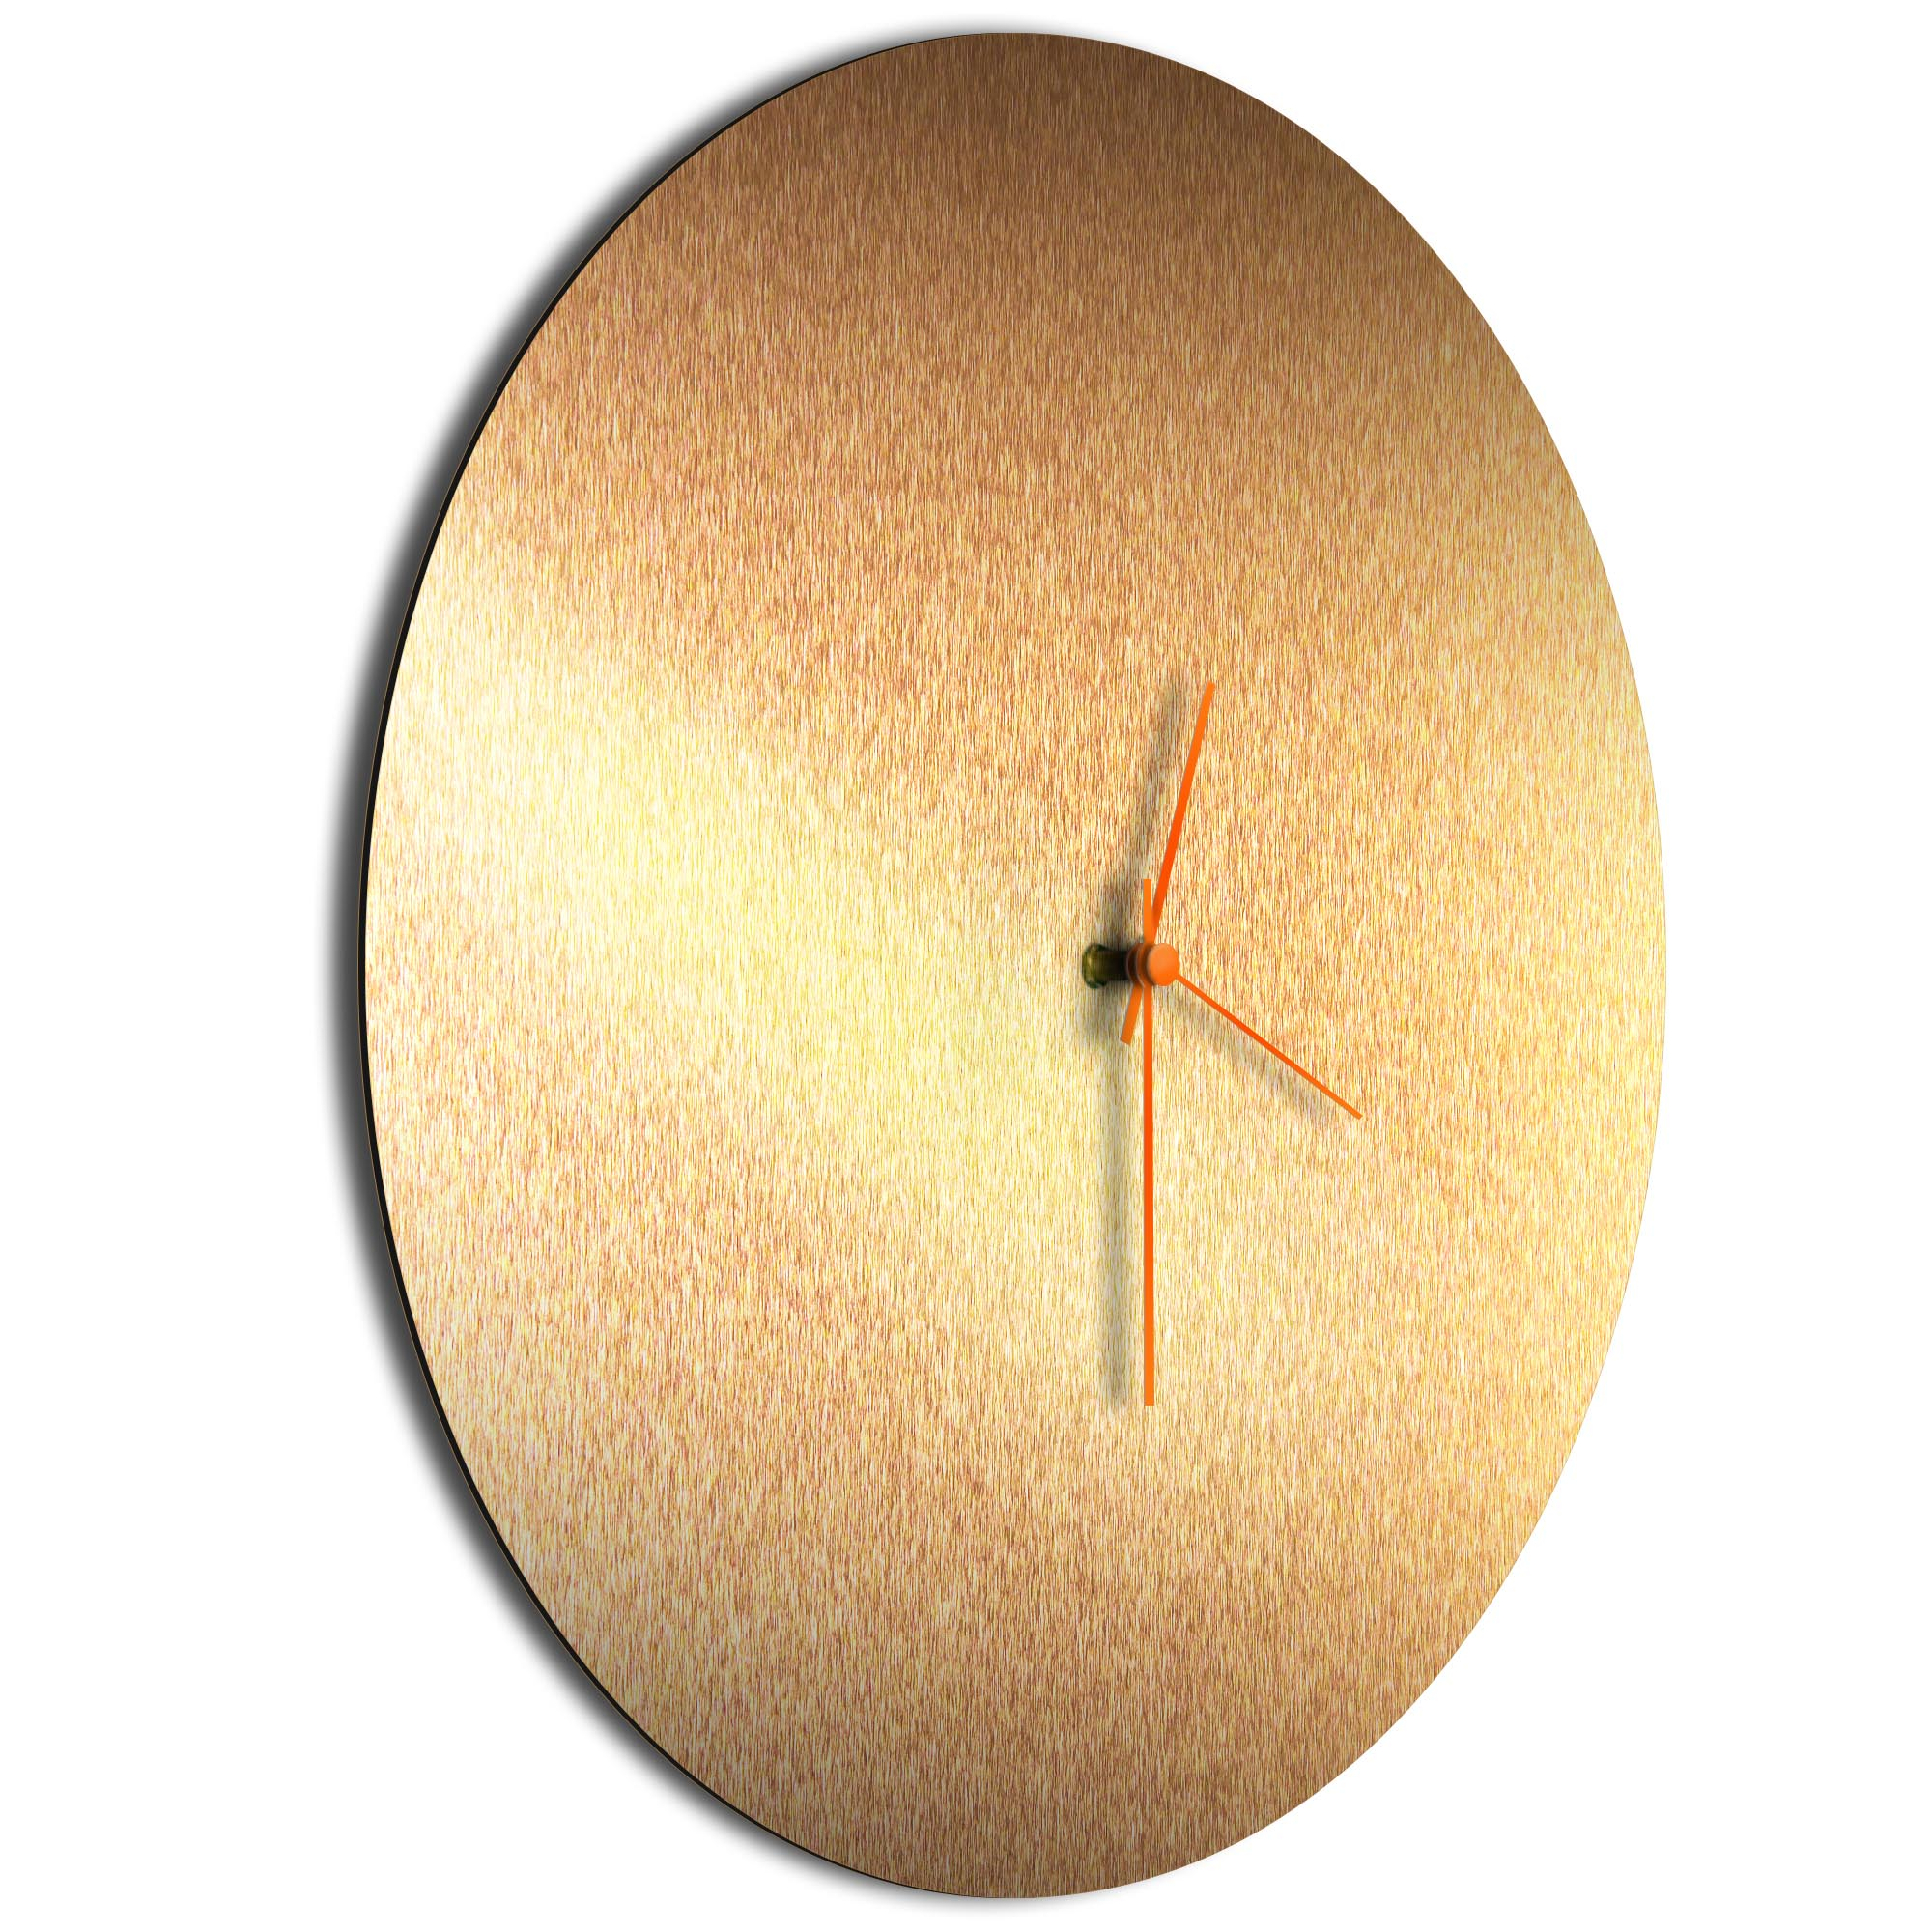 Bronzesmith Circle Clock Orange - Image 2